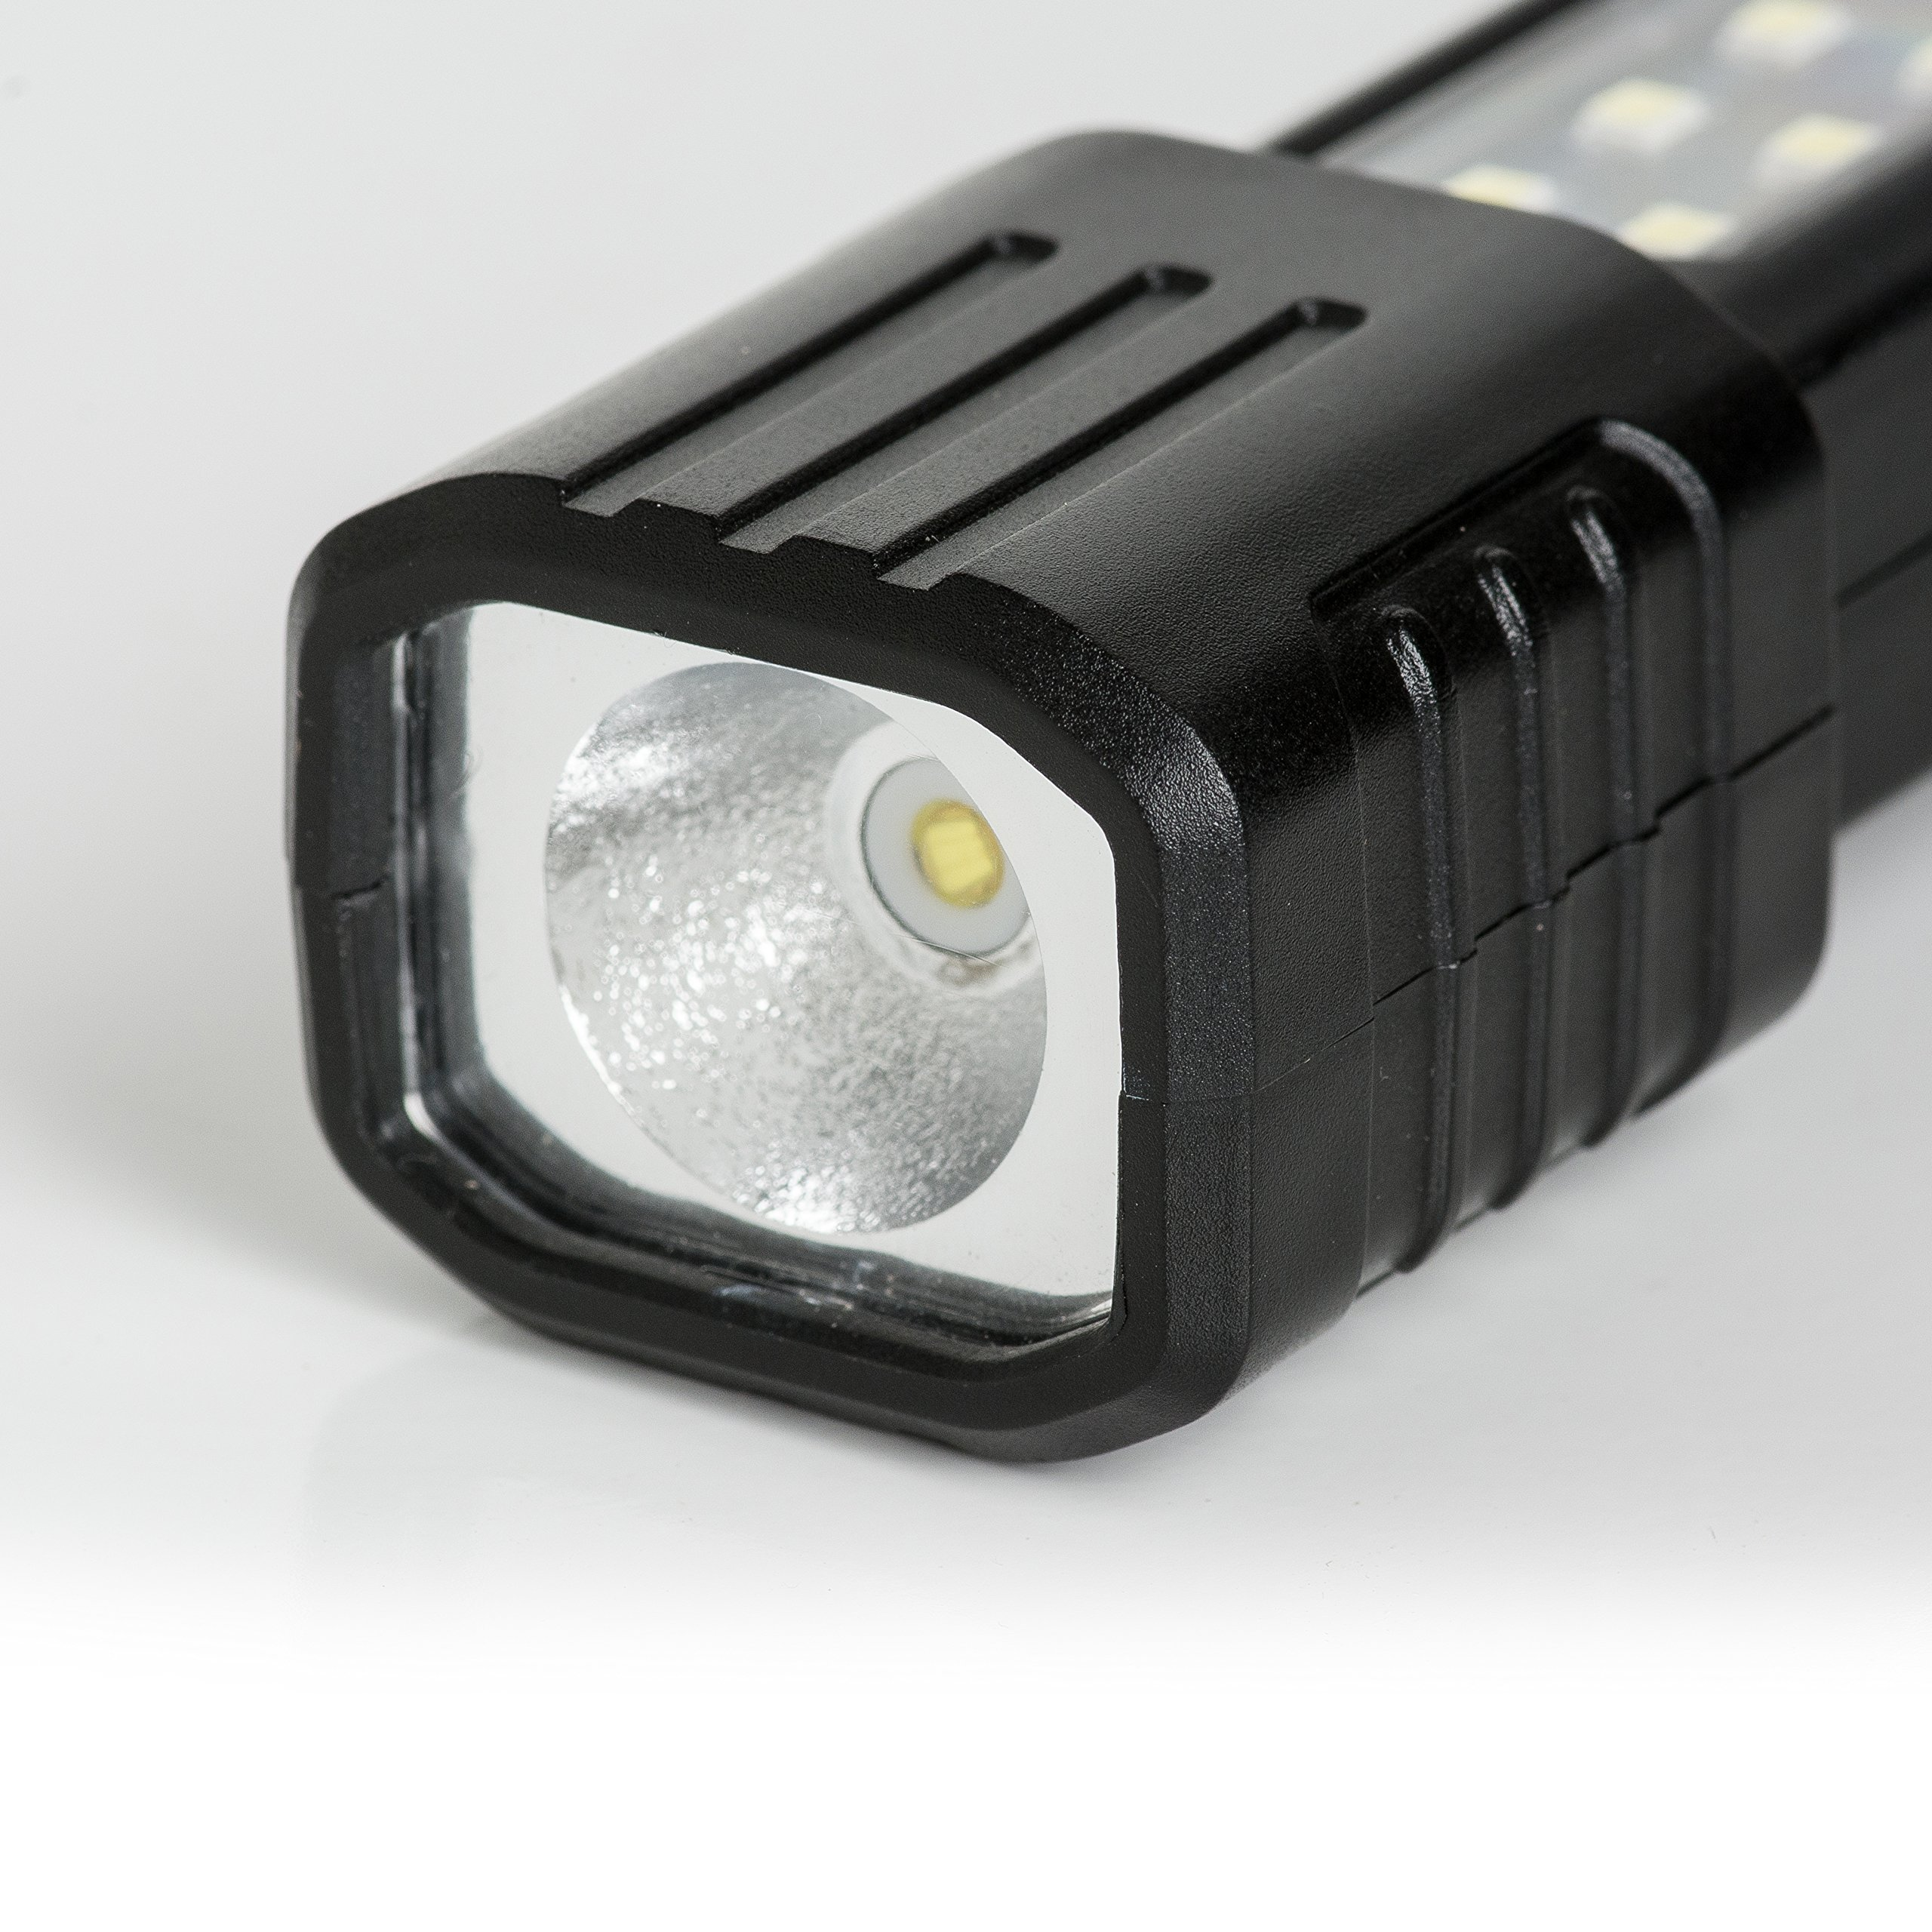 Cat CT3110 Extendable Dual Panel COB LED Hand Held Work Light With Magnetic Base (Black/Yellow) by Caterpillar (Image #5)